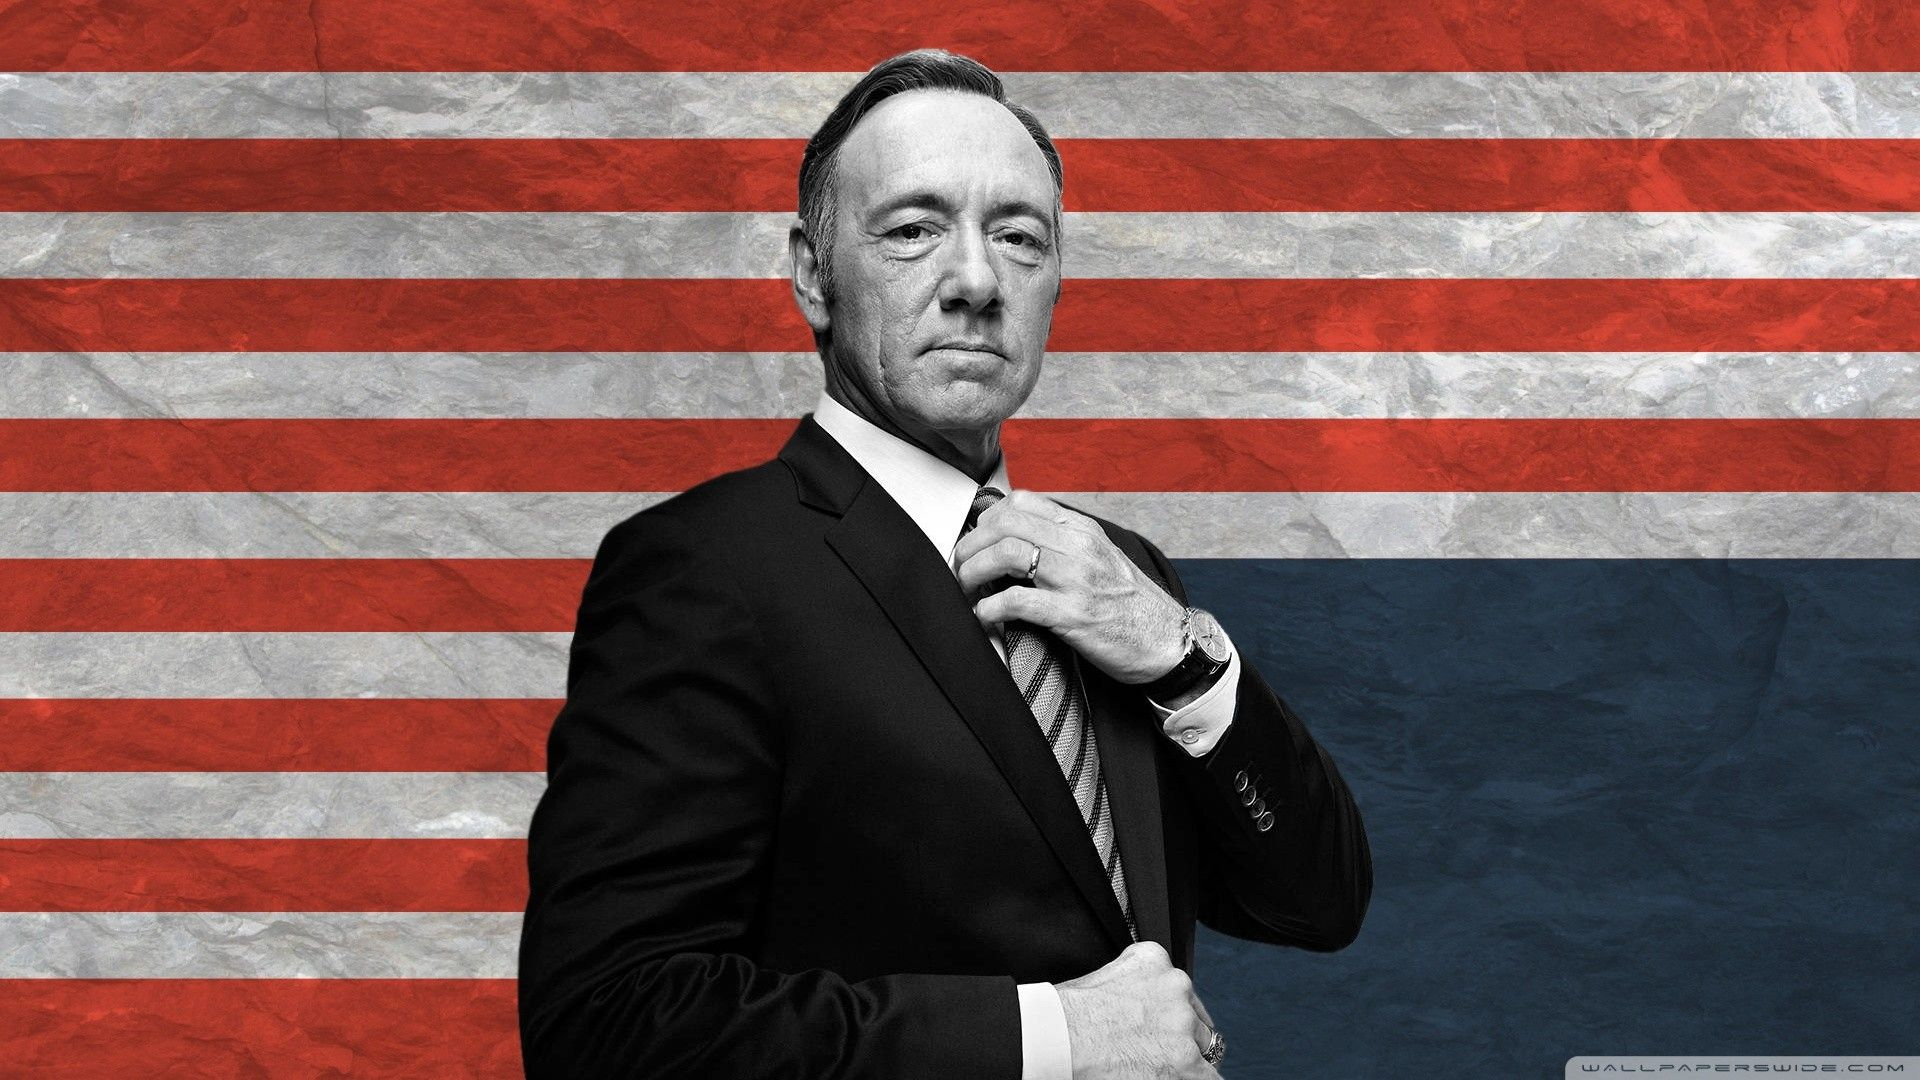 House Of Cards Wallpapers Top Free House Of Cards Backgrounds